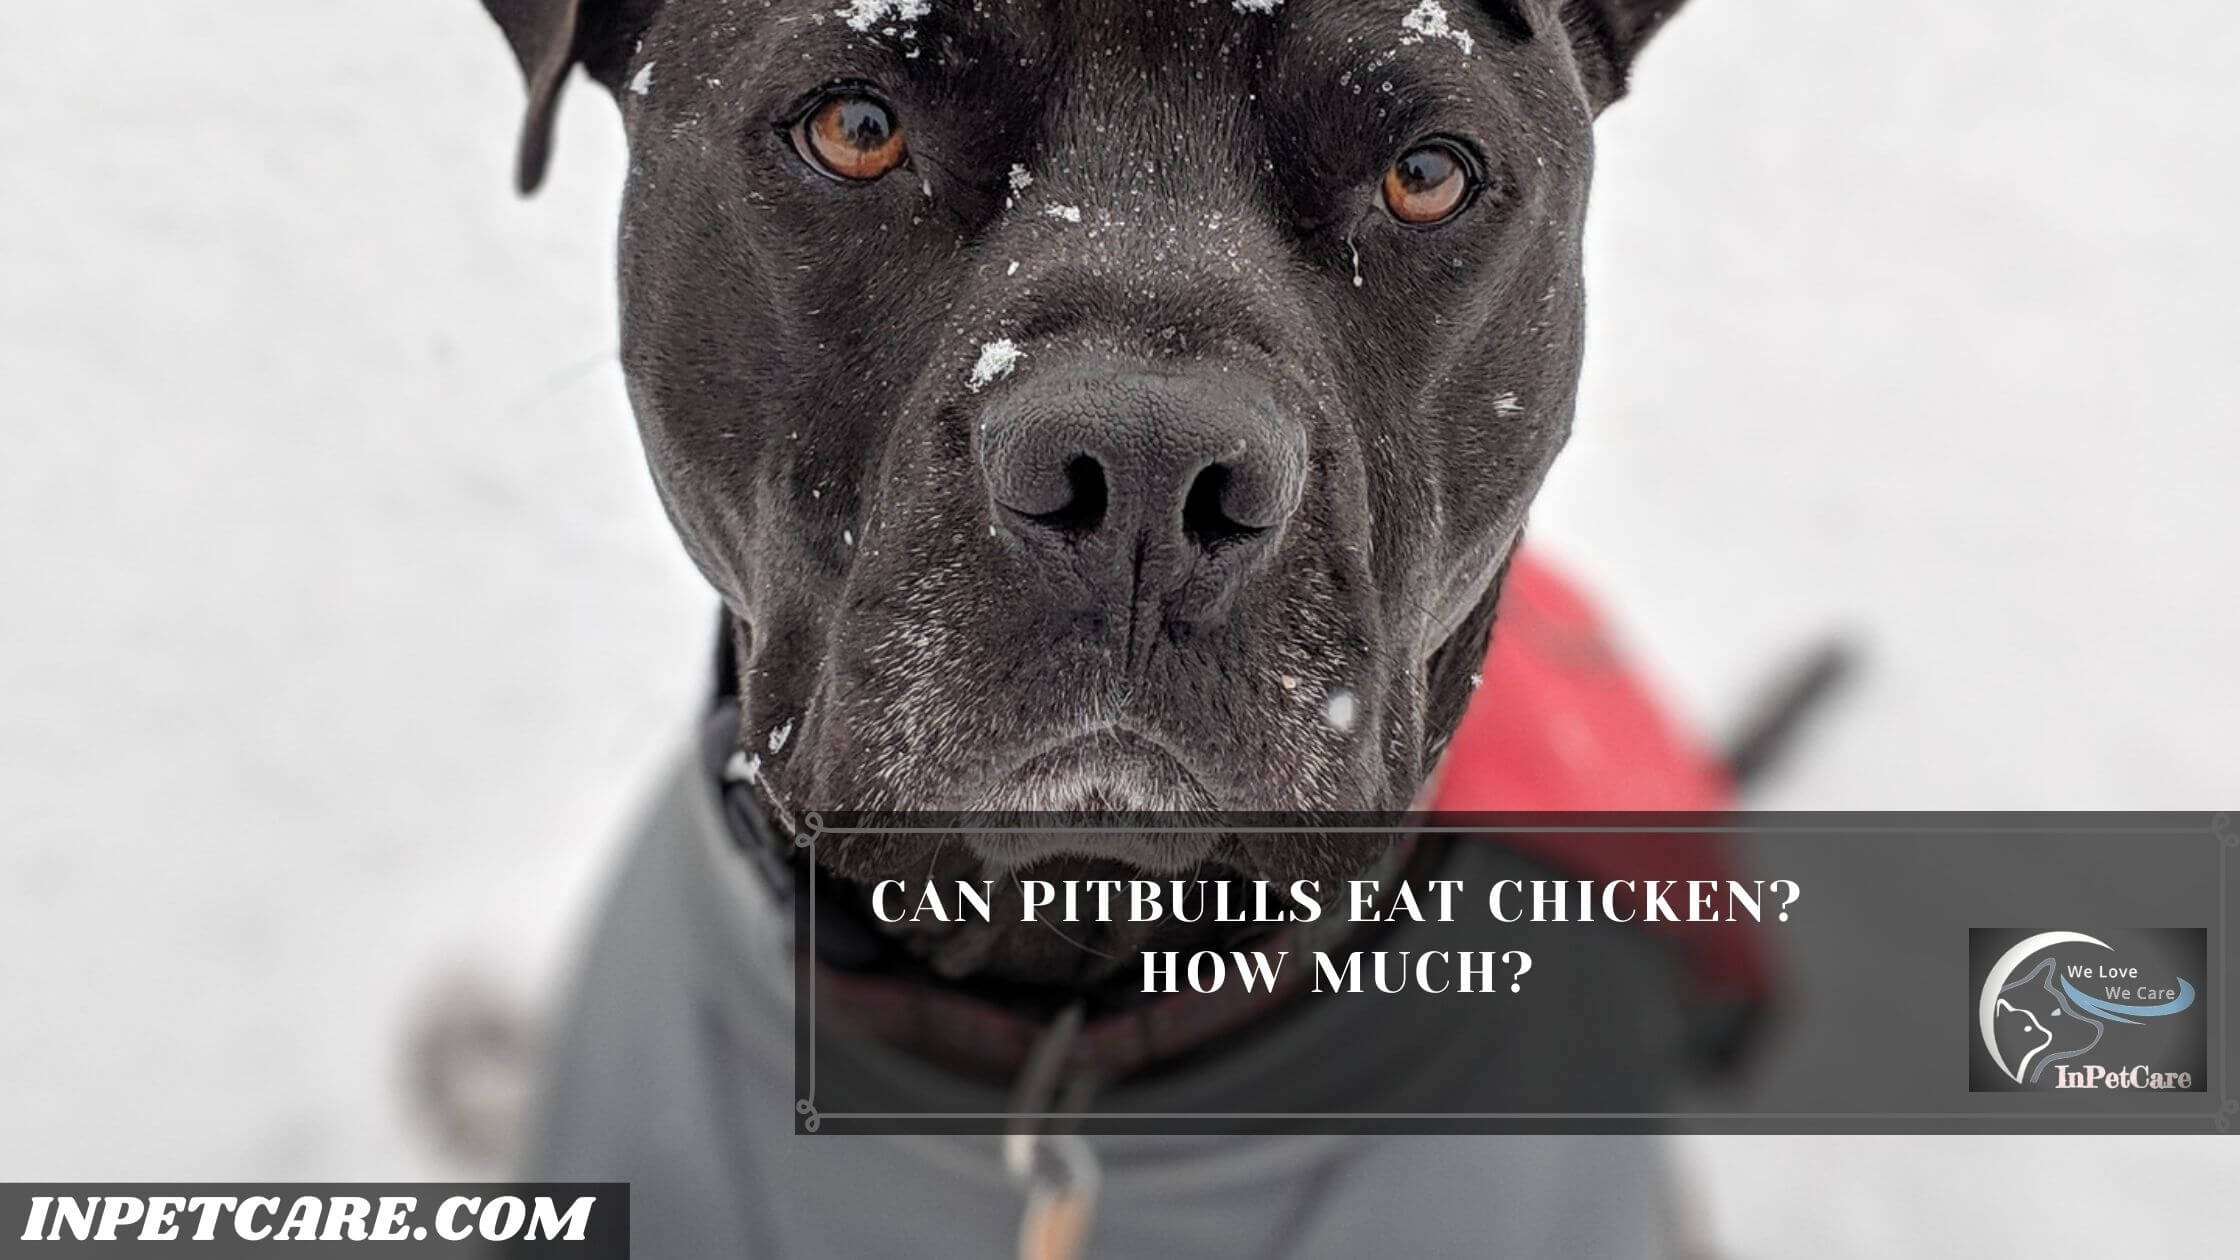 Can Pitbulls Eat Chicken? Can Pitbulls Eat raw Chicken?